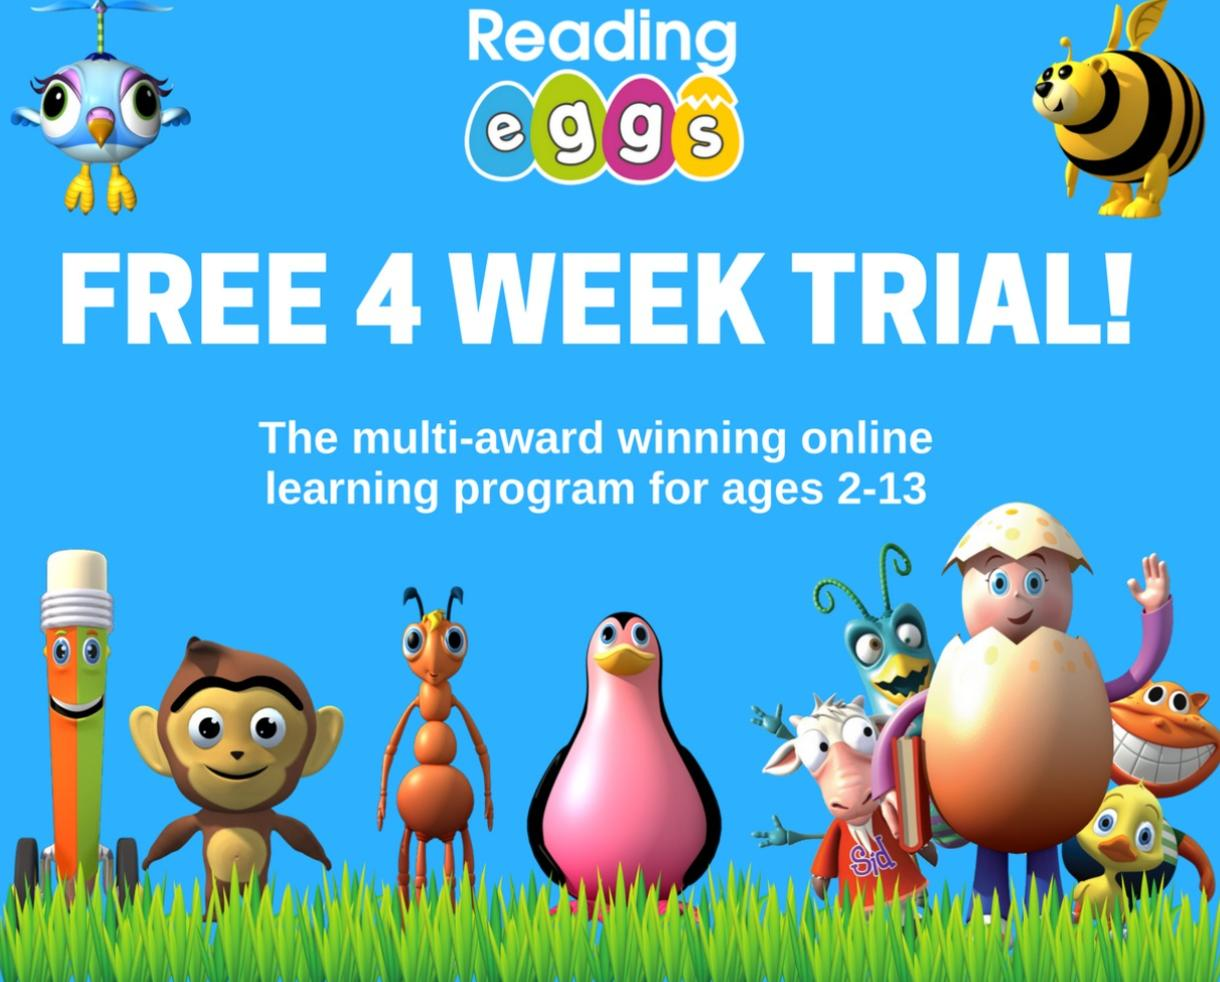 Learn to Read in 4 Weeks FREE with Reading Eggs!